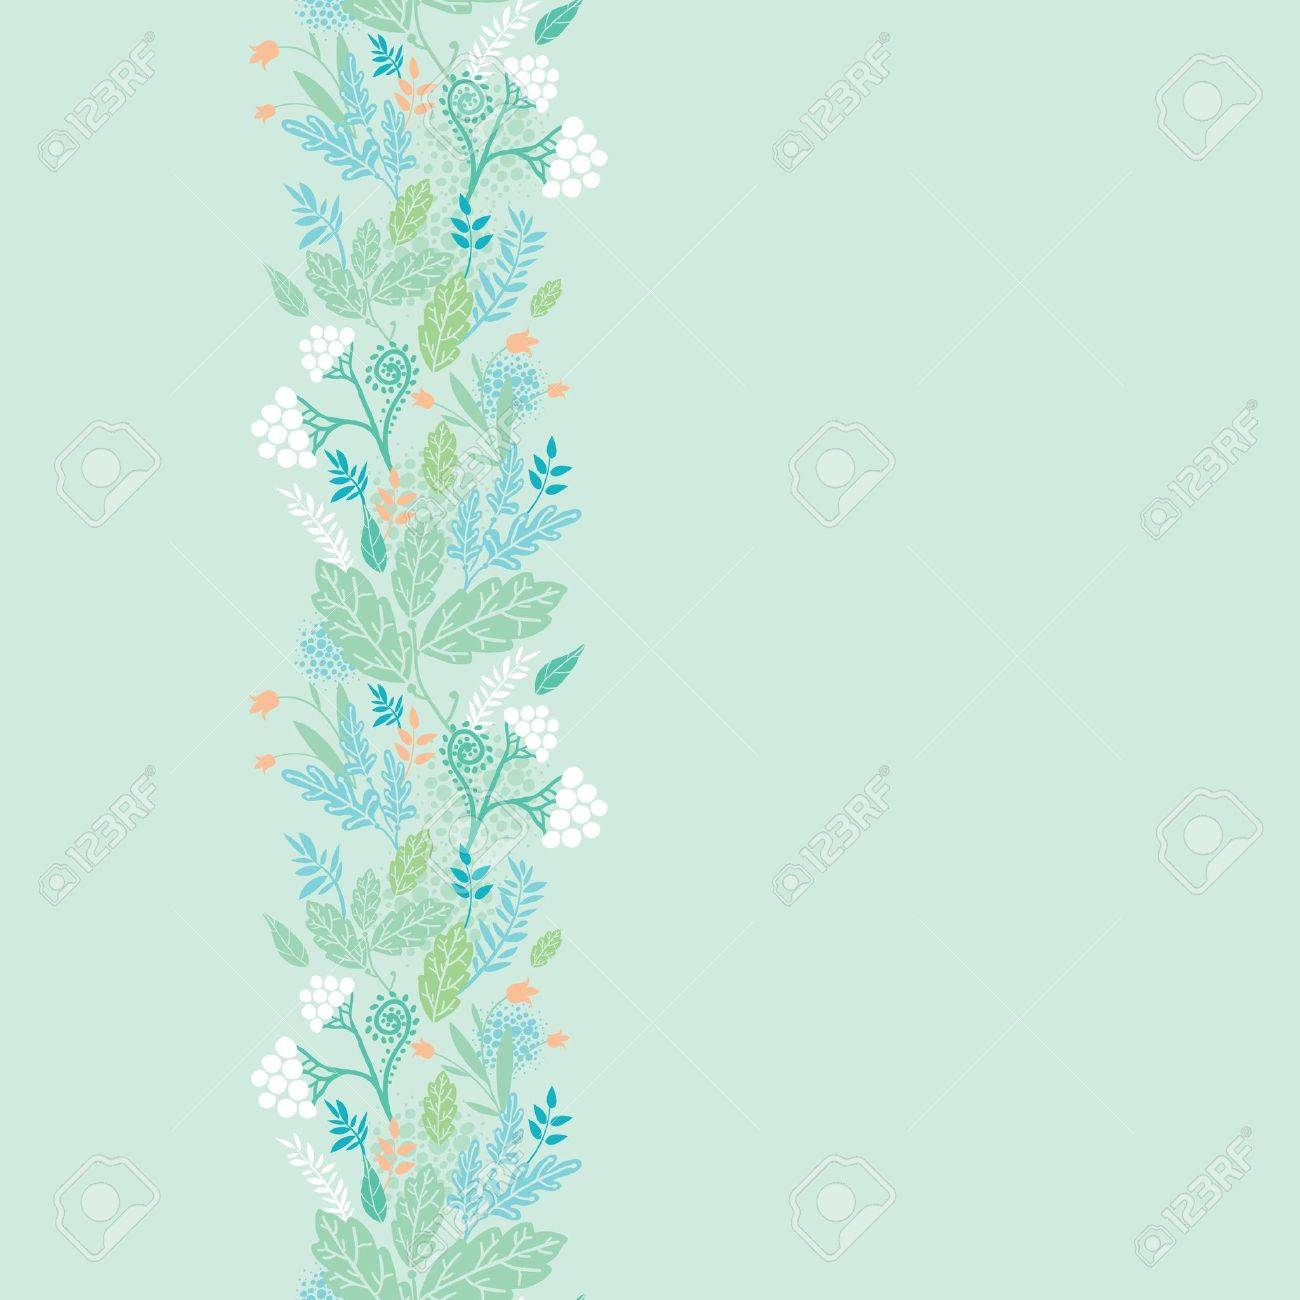 Spring berries vertical seamless pattern background border Stock Vector - 16583030